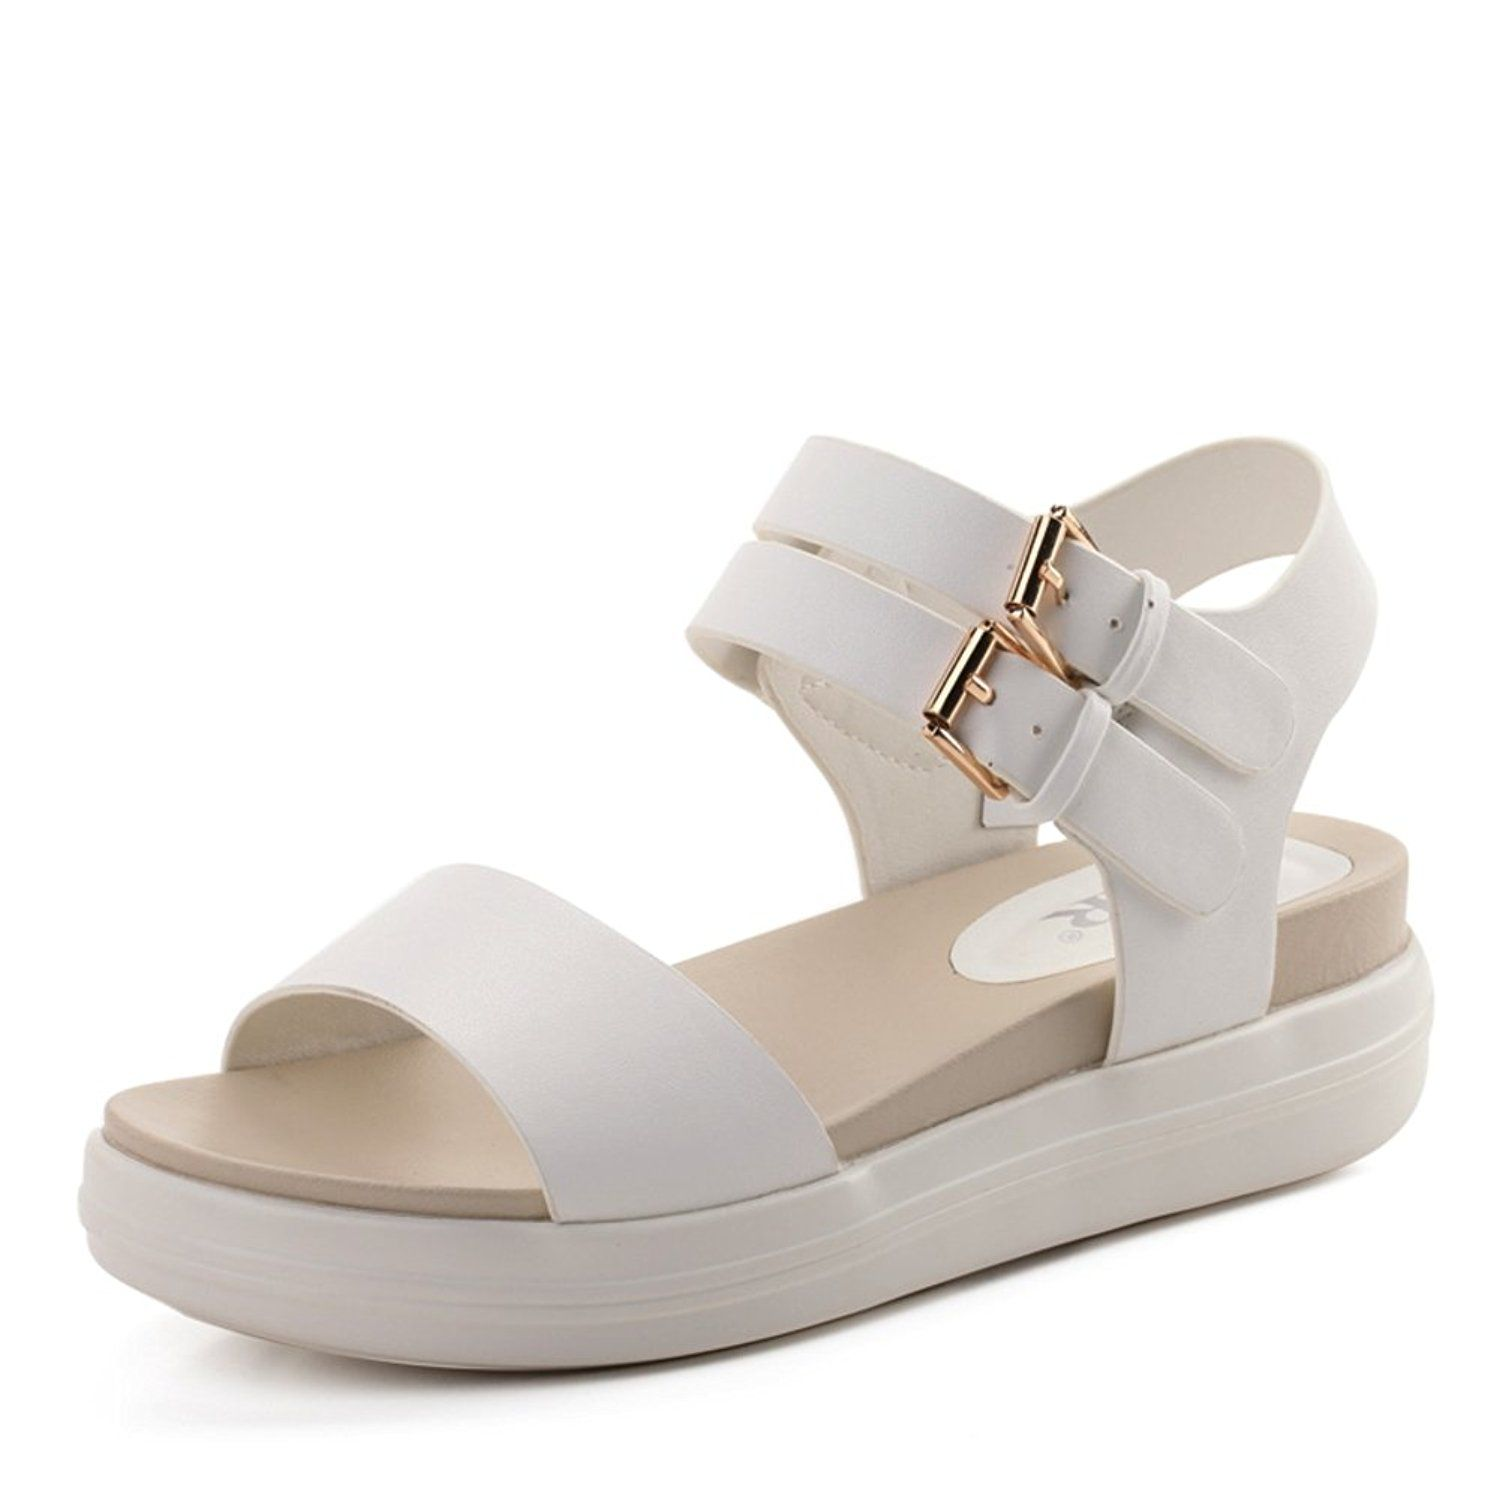 0cb3df2767b4 Summer Korean version of thick soles for ladies sandals Students with flat  Sandals women With platform shoes -- Click image to review more details.